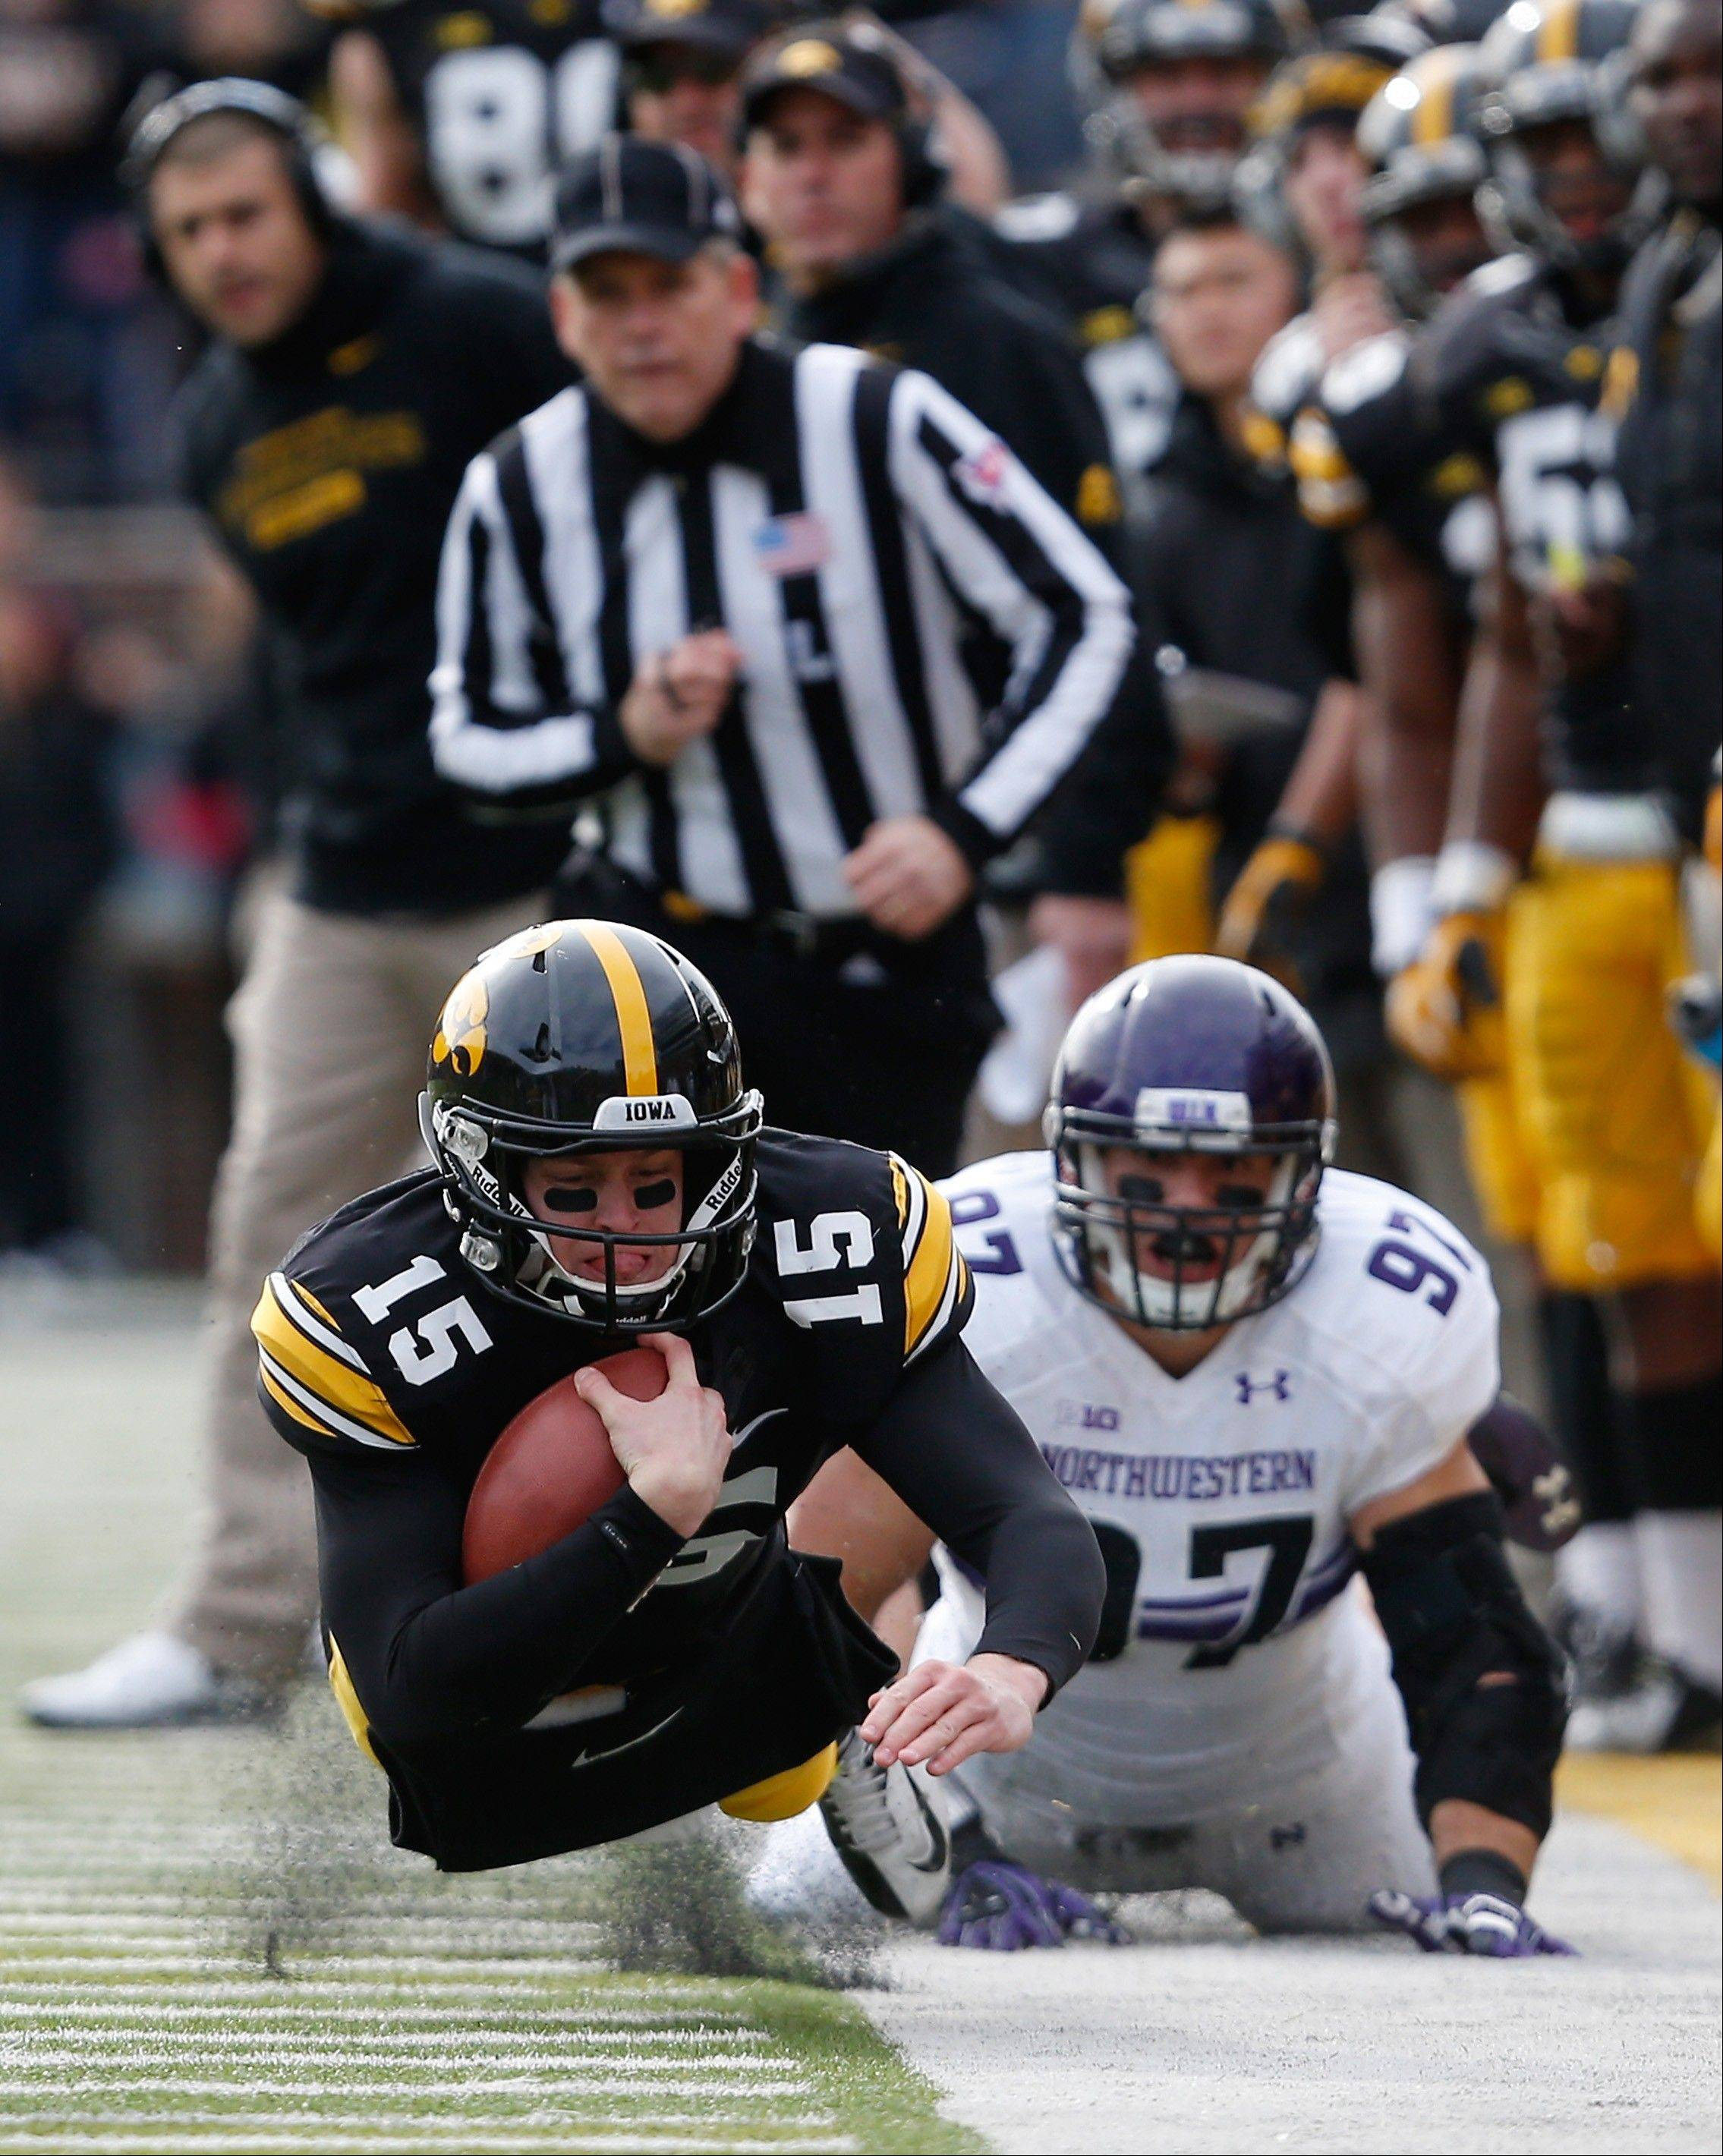 Iowa quarterback Jake Rudock (15) dives for a first down in front of Northwestern's Tyler Scott (97).